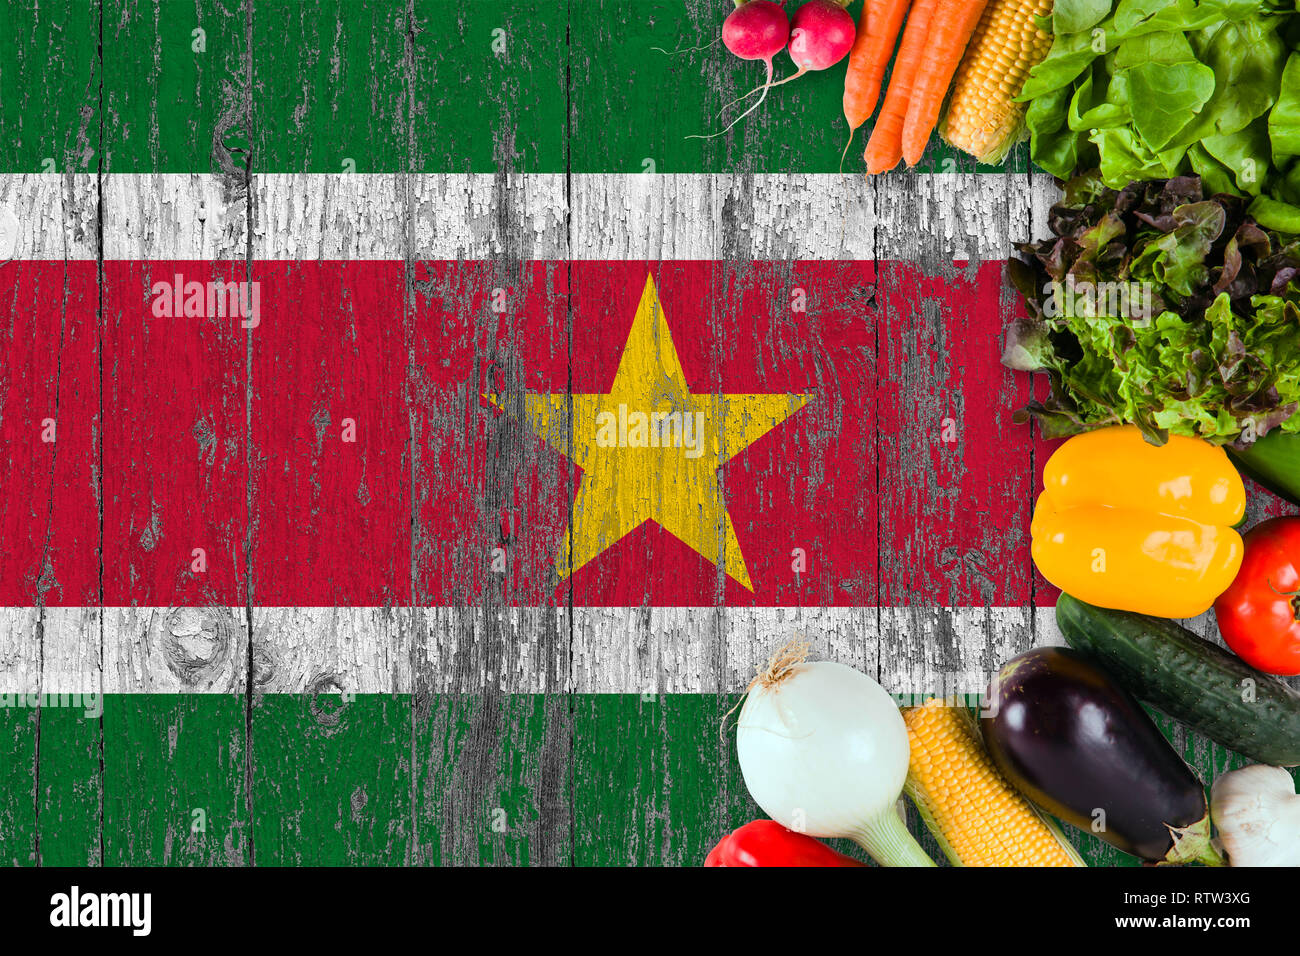 Fresh vegetables from Suriname on table. Cooking concept on wooden flag background. - Stock Image